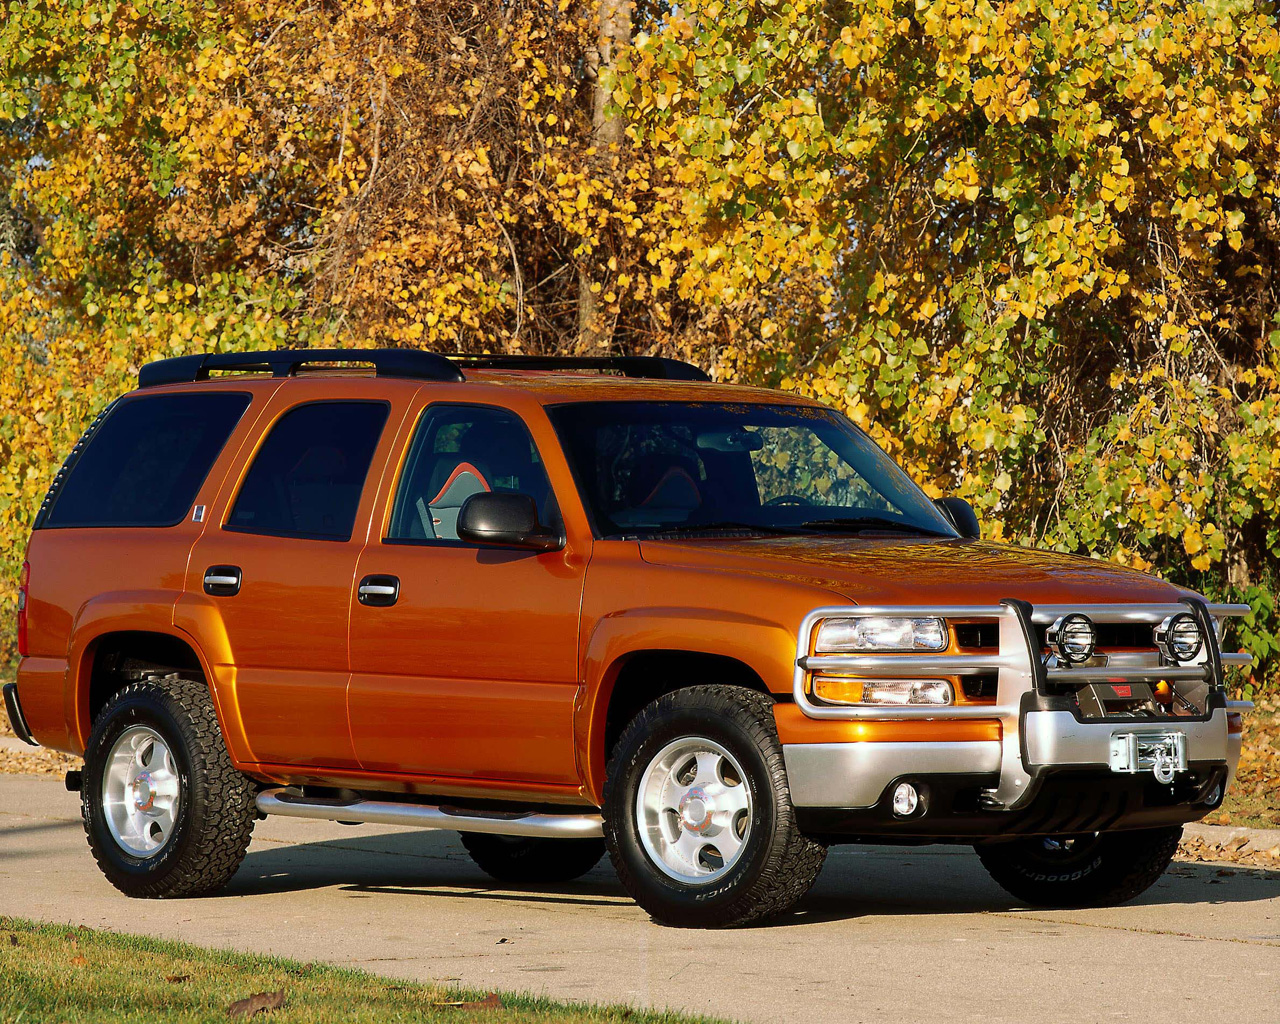 chevrolet tahoe (gmt840) 2000 images #8